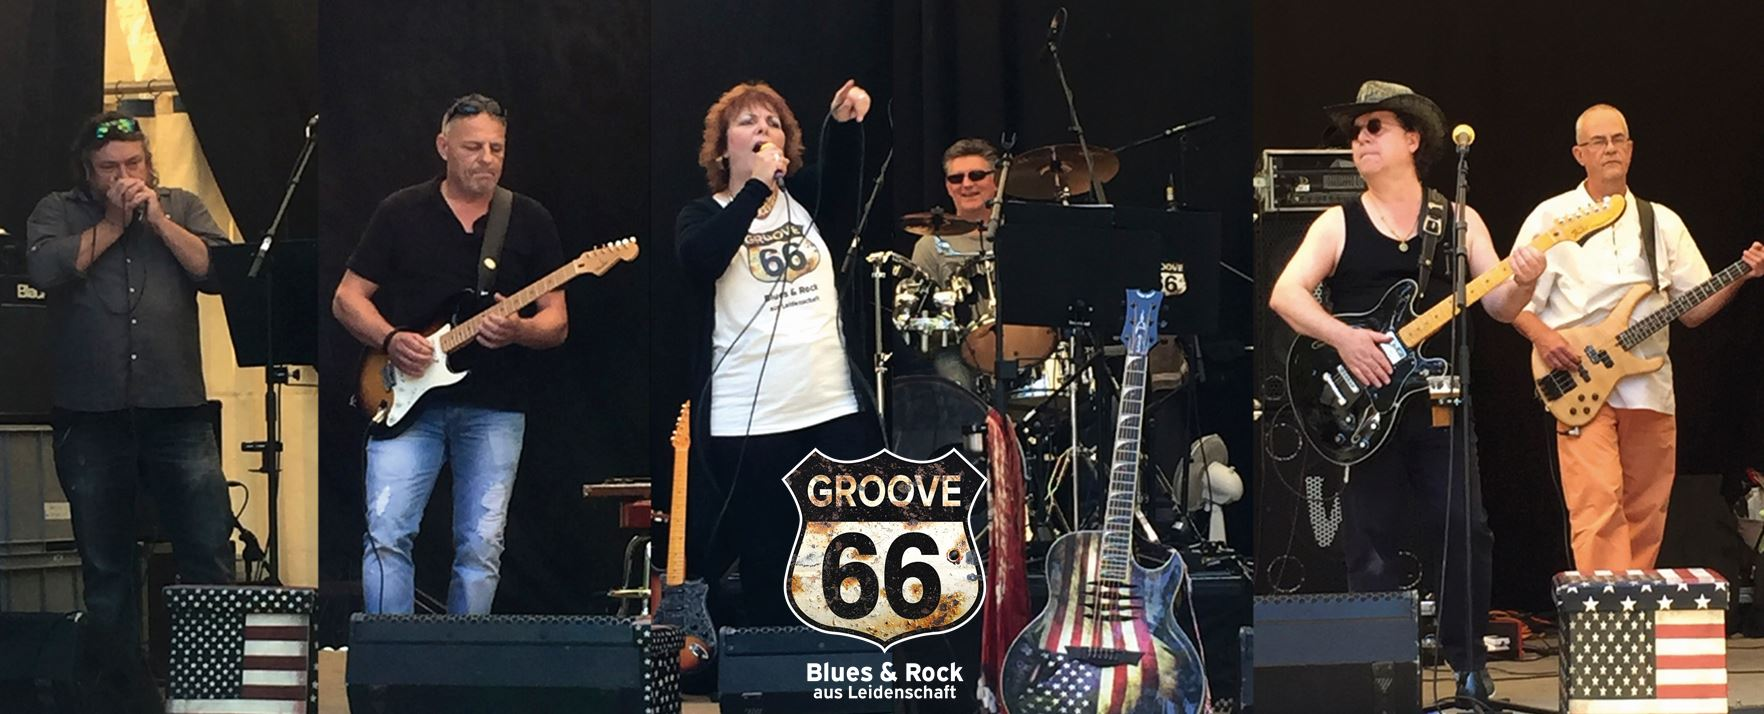 GROOVE66 - Blues & Rock aus Leidenschaft - Cover Band picture